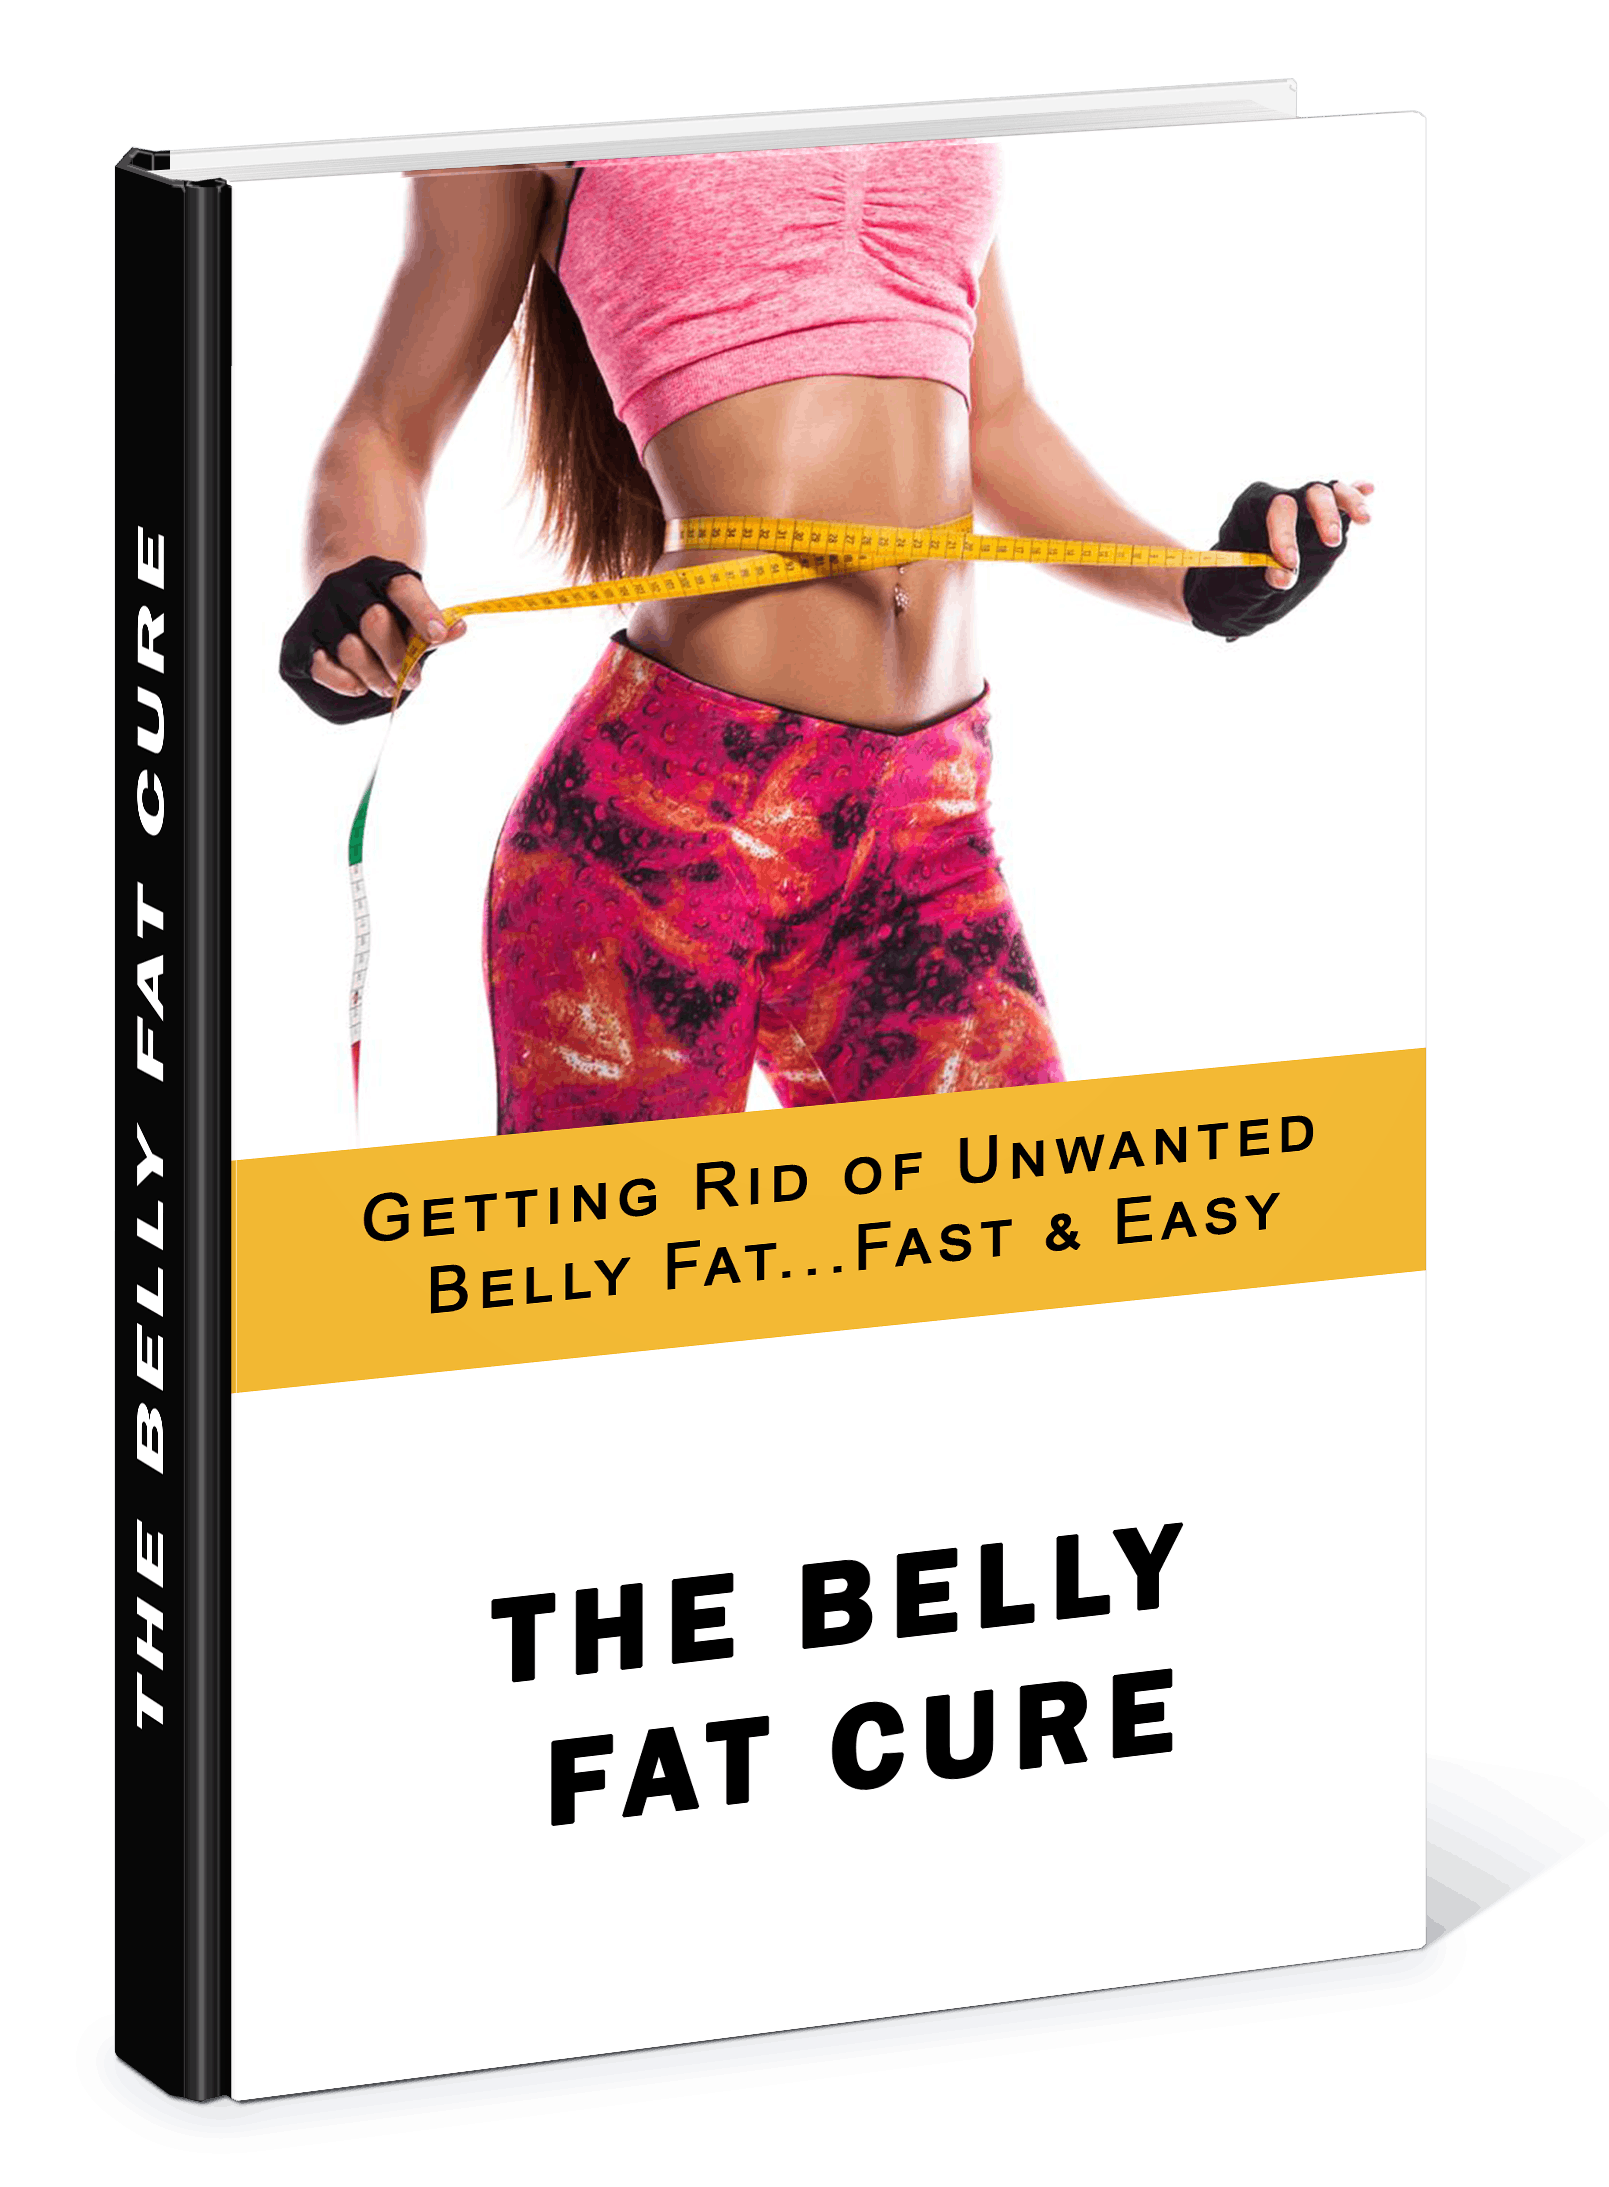 FITYOU COMPLETE FREE EBOOKS